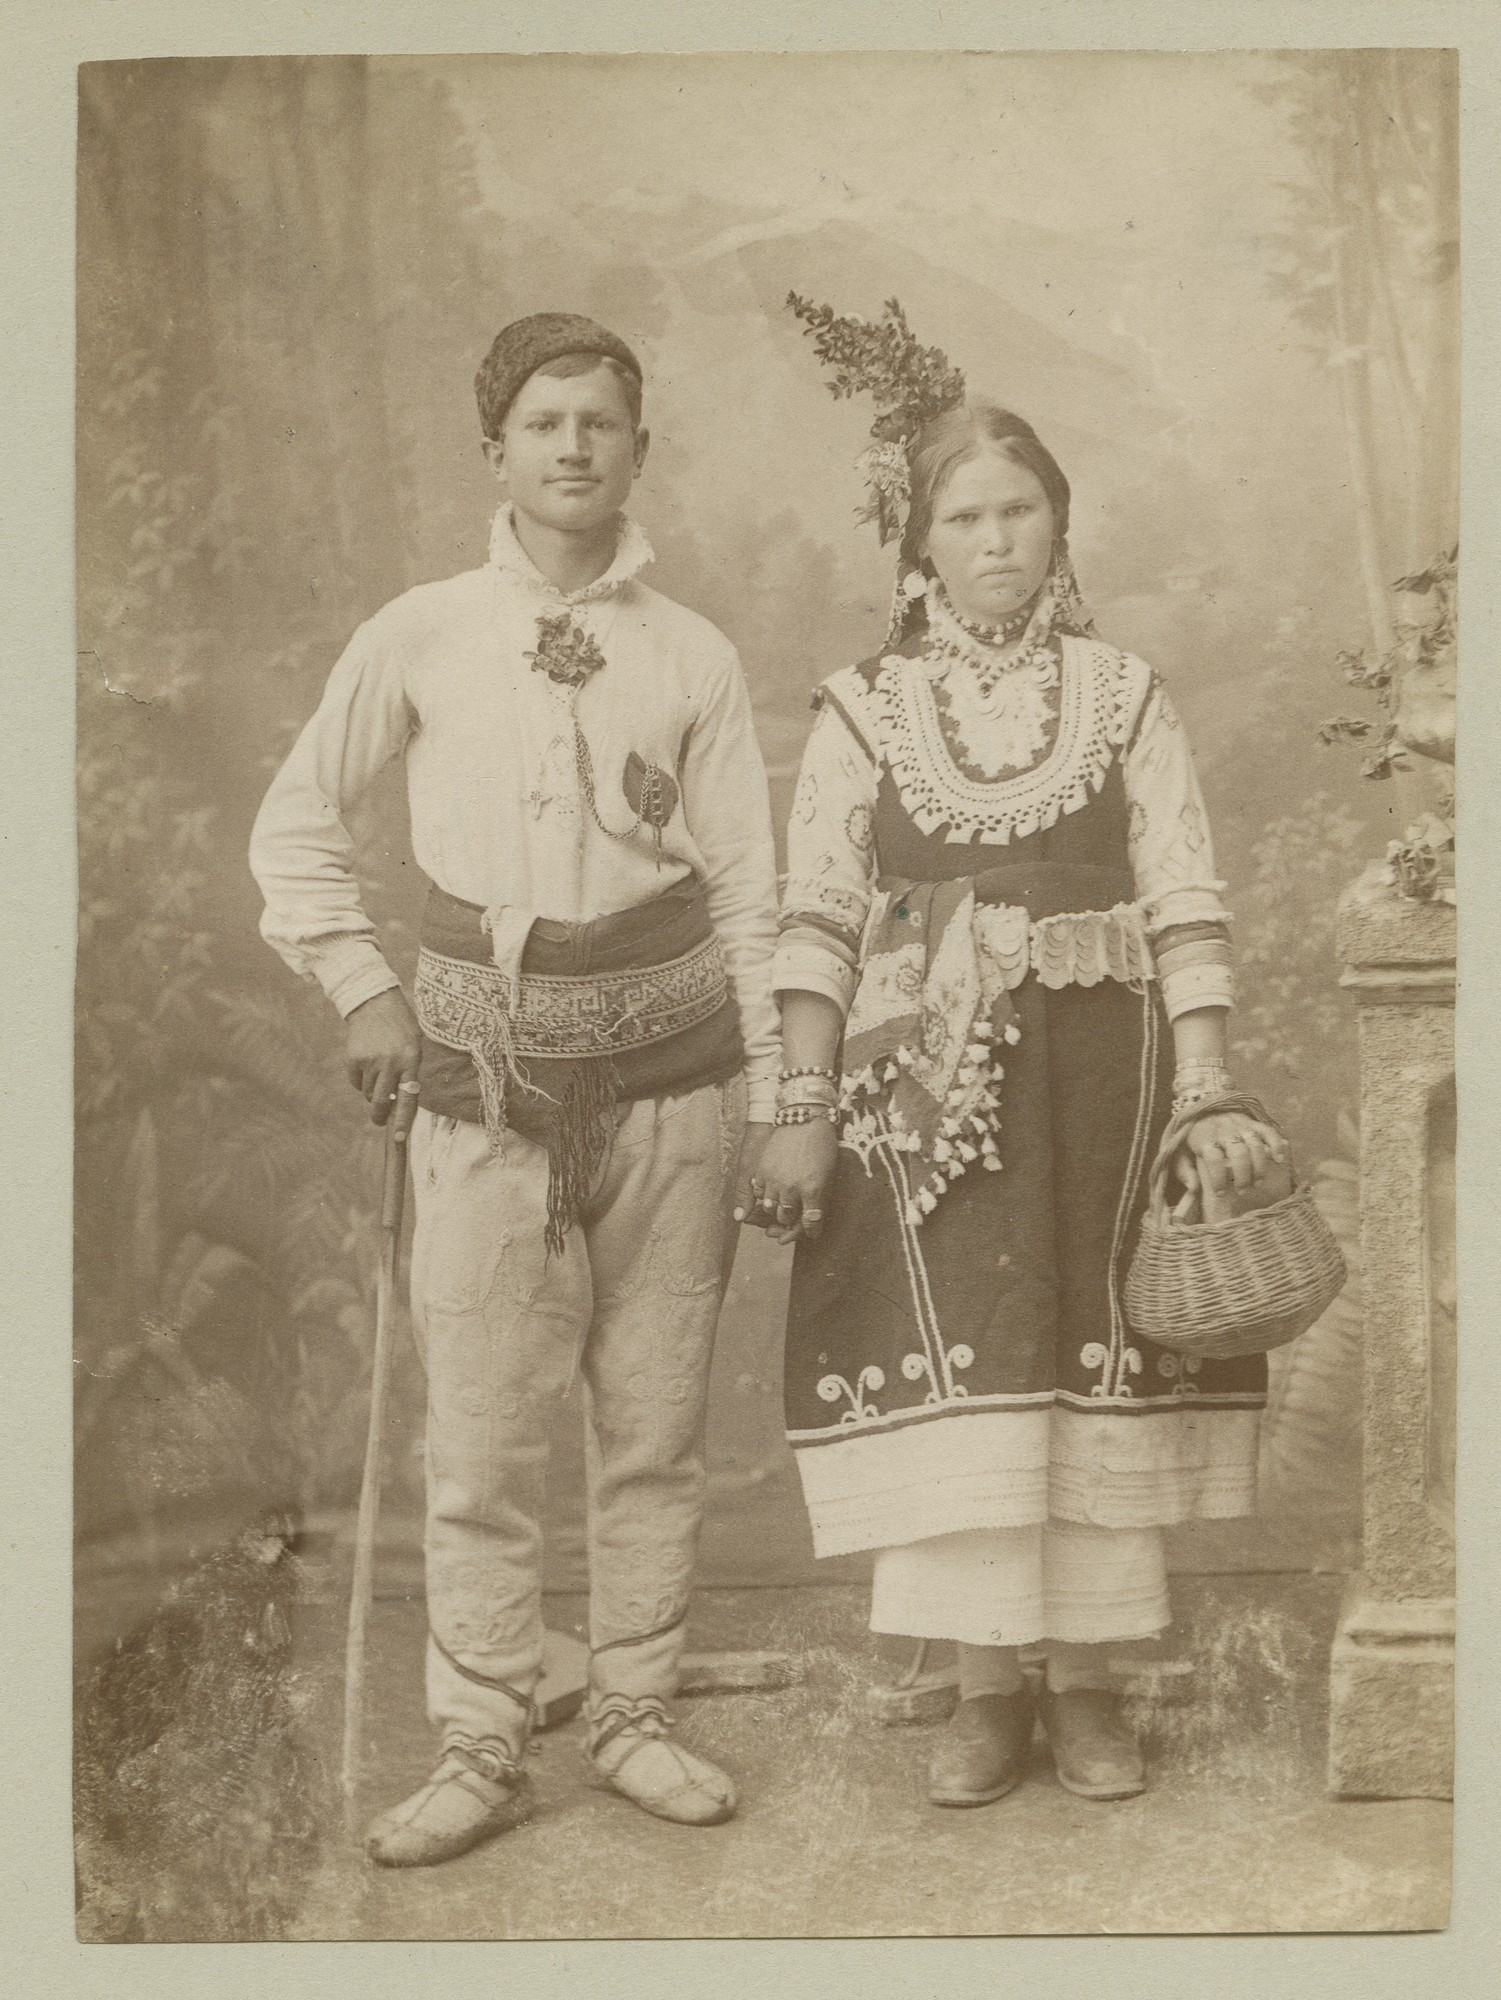 Studio portrait of a woman and a man in folk attire, © The Austrian Museum of Folk Life and Folk Art